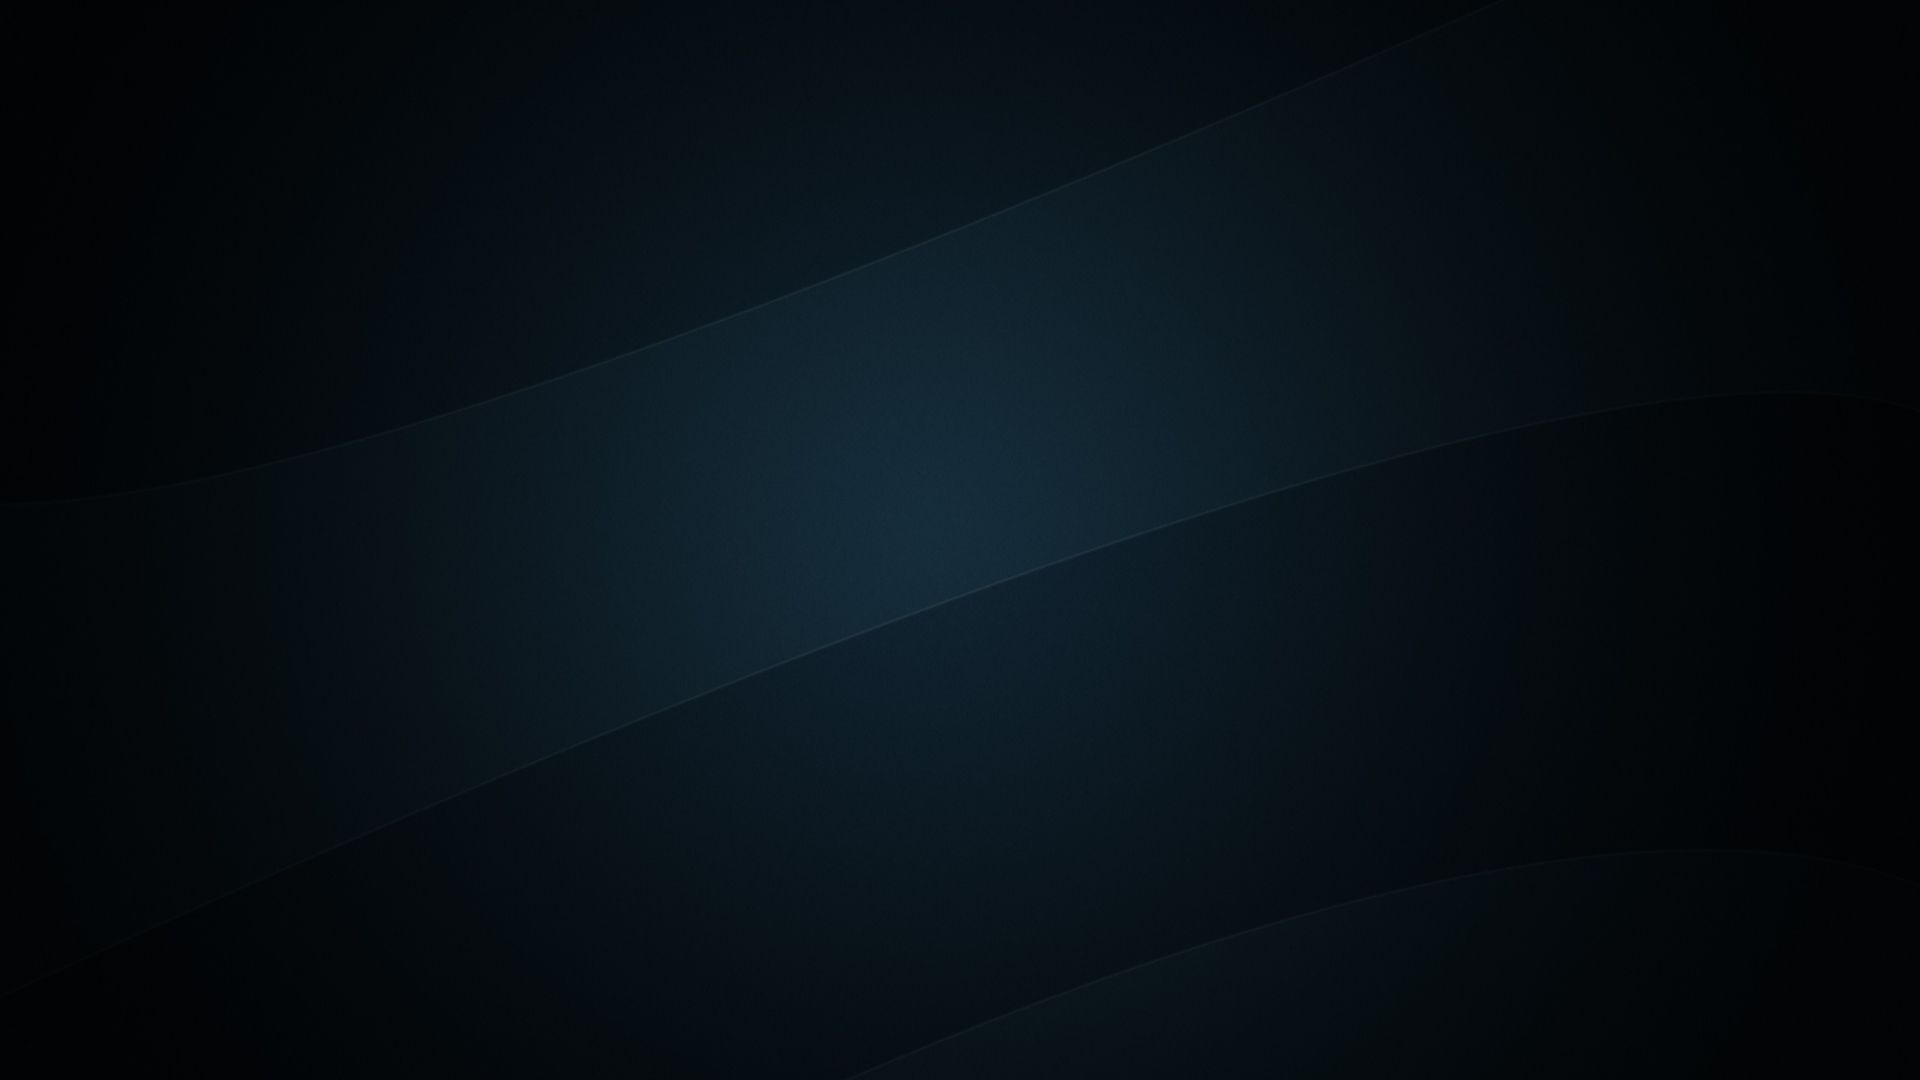 pure black wallpaper android central | wallpapers 4k | pinterest